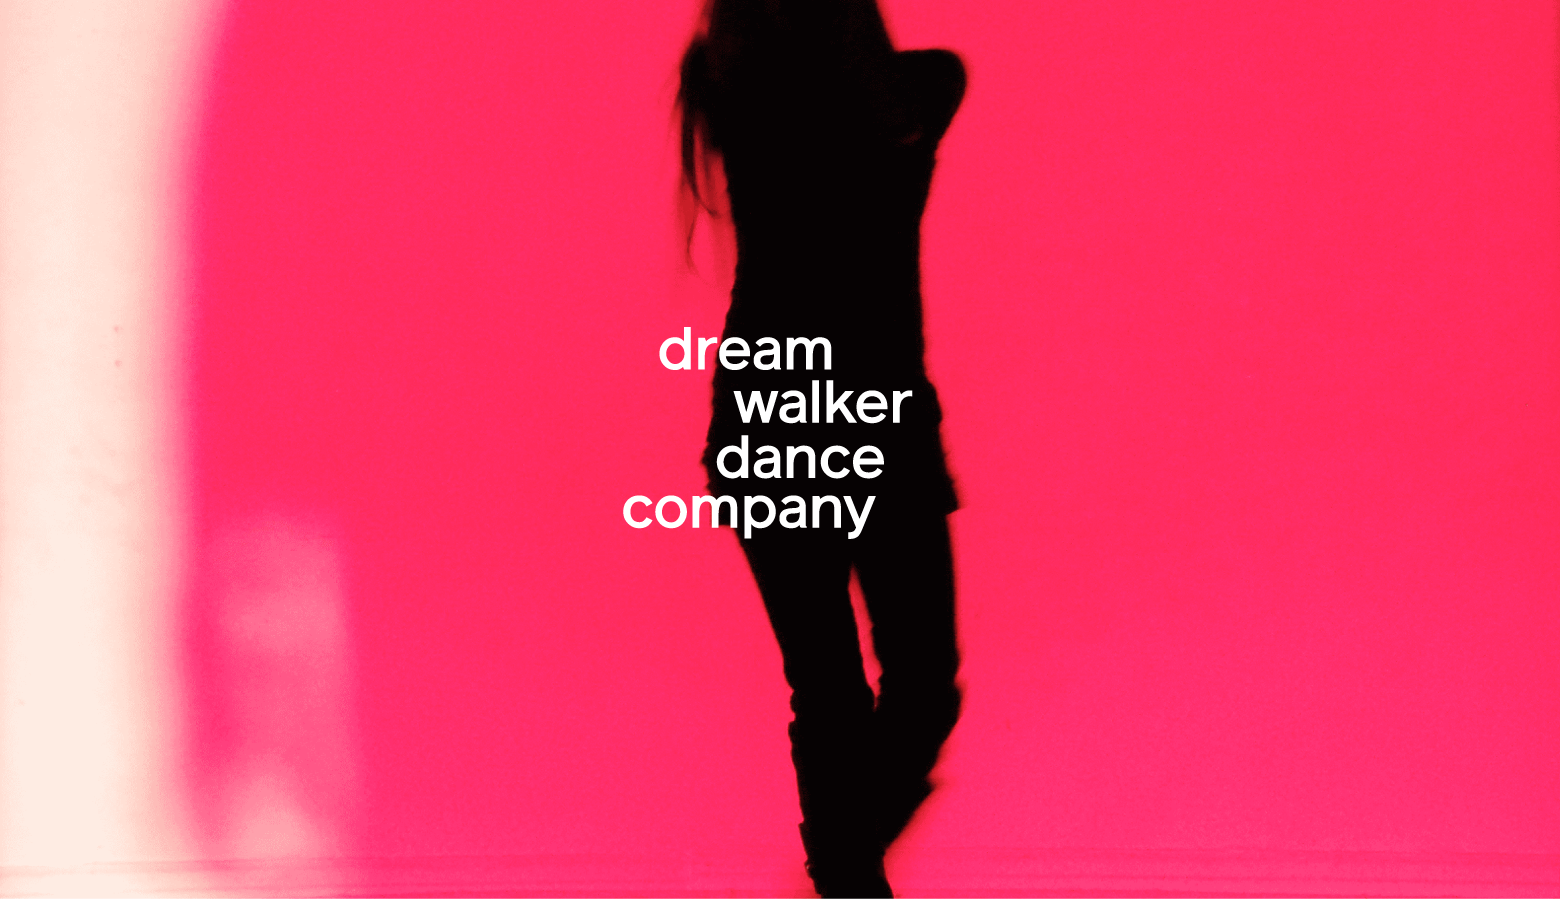 Dreamwalker Dance Company